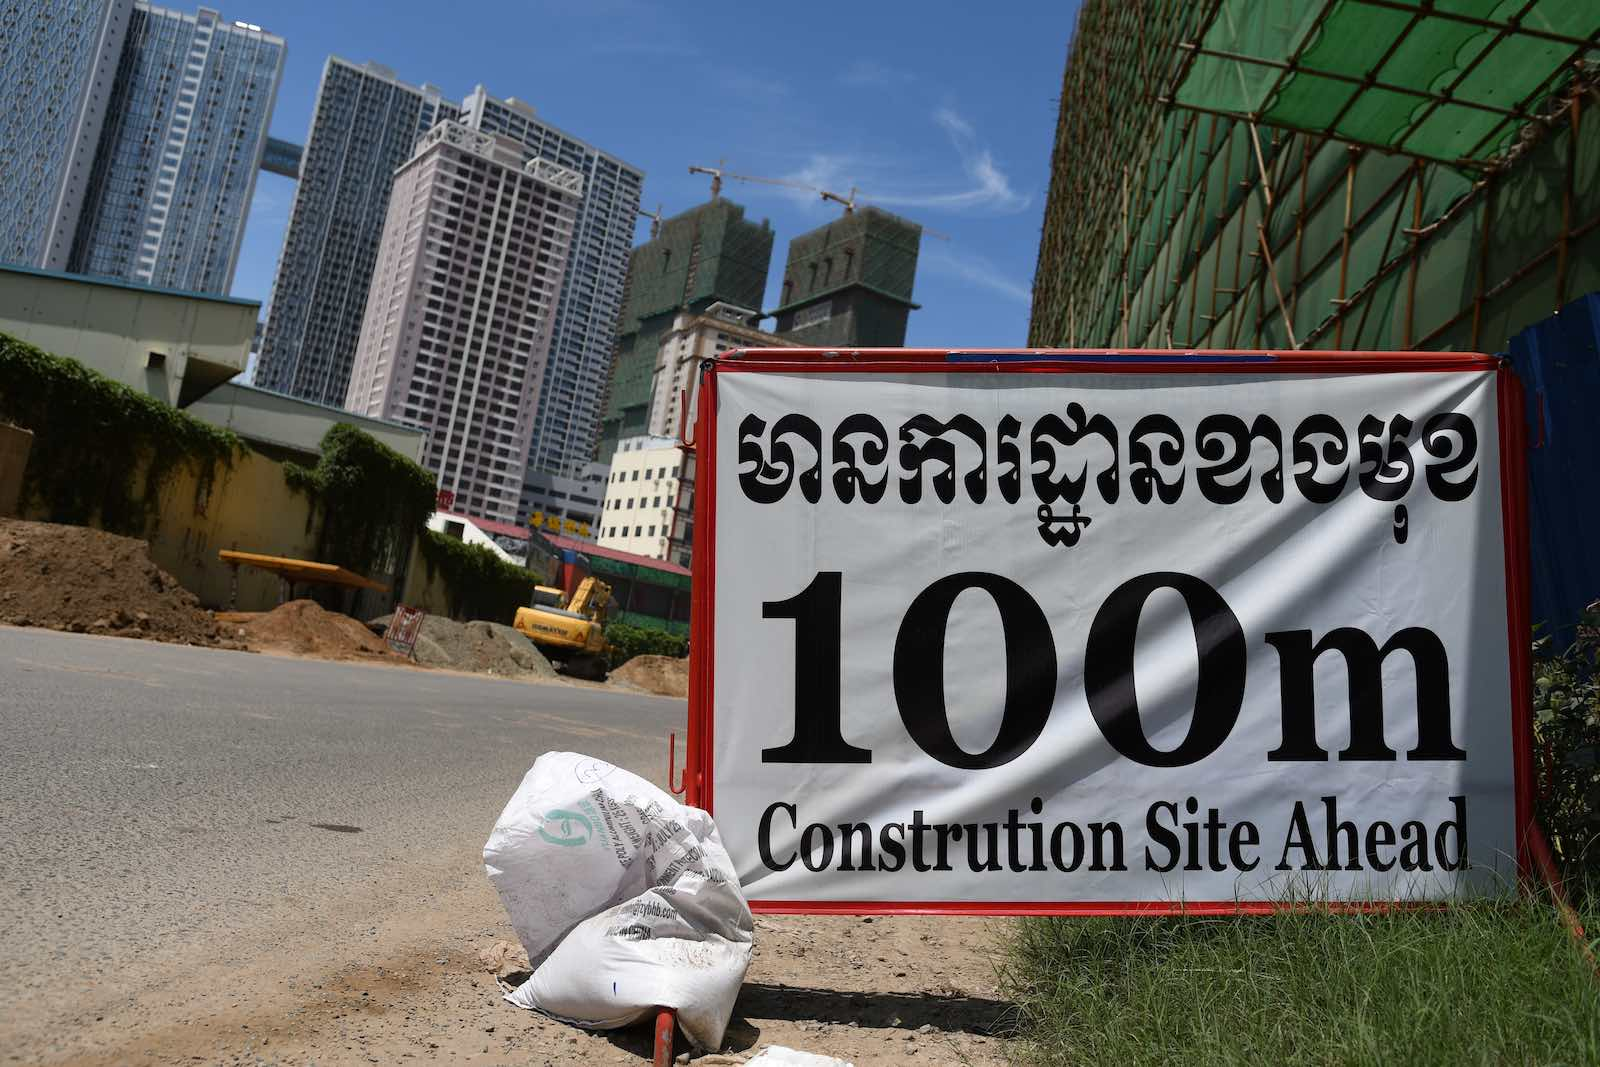 Occasional road-signs to warn passers-by does not do justice to the intensity of construction seen in the Cambodian capital (Photos by Simon Roughneen)